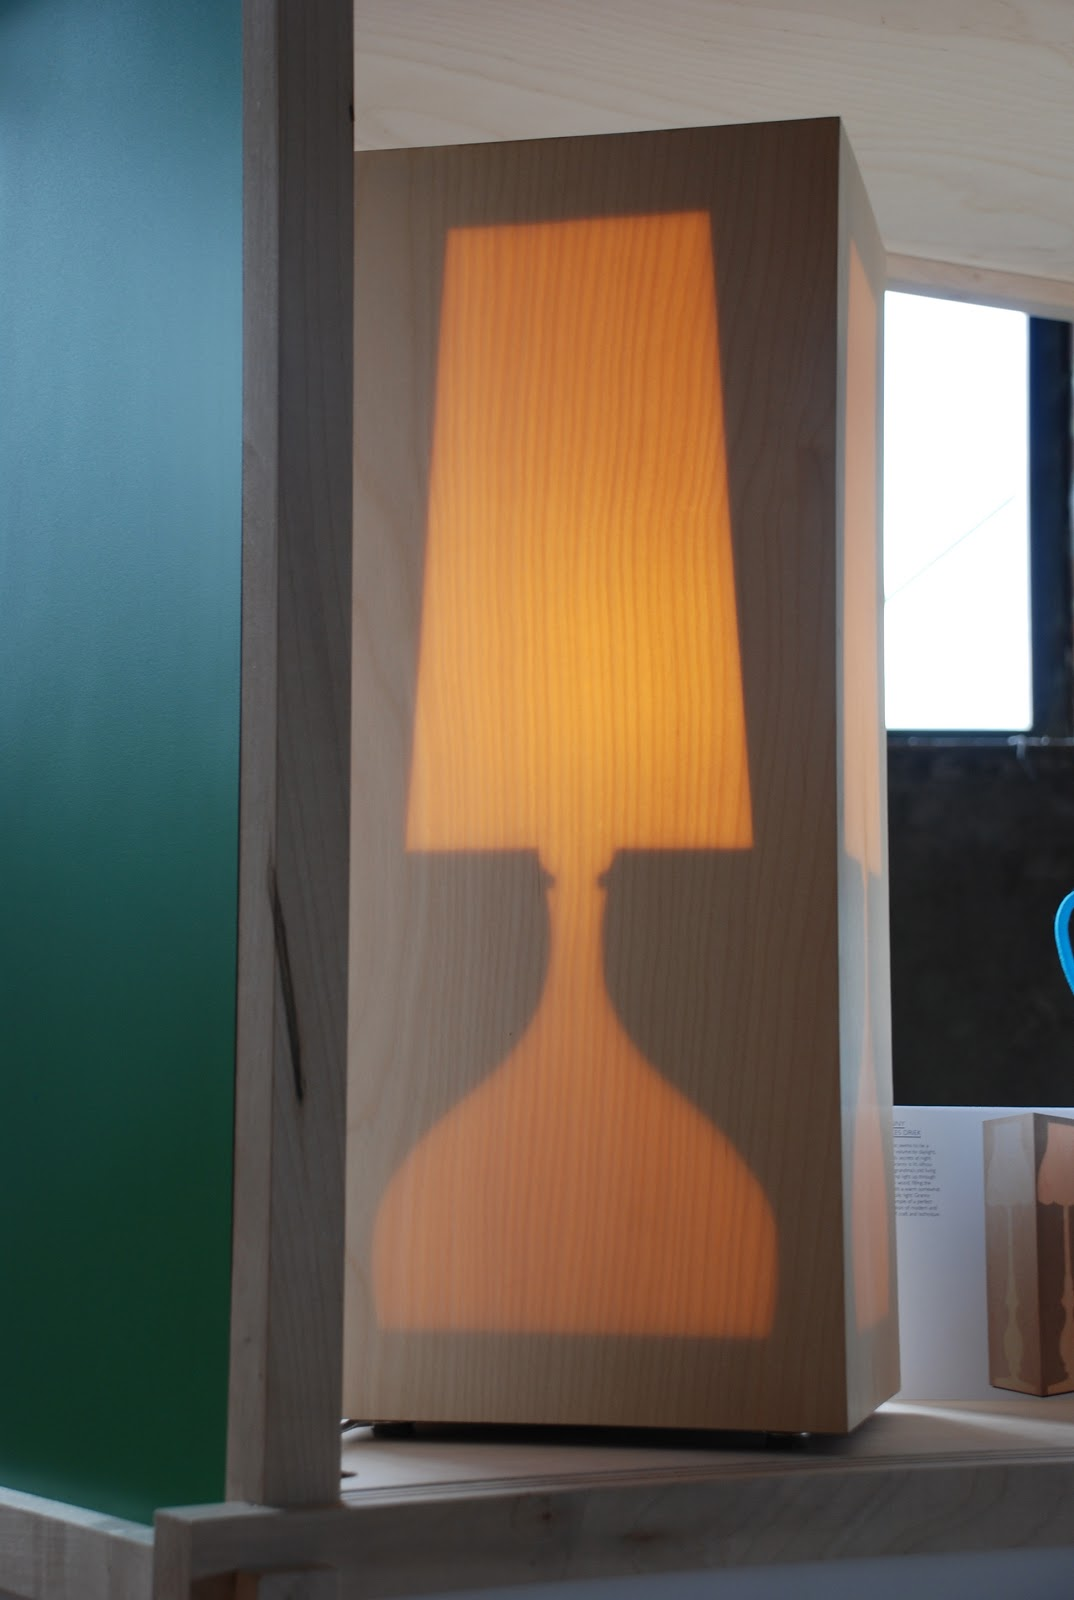 The squid stories my interieur 2012 impressions part 1 a for Design interieur formation